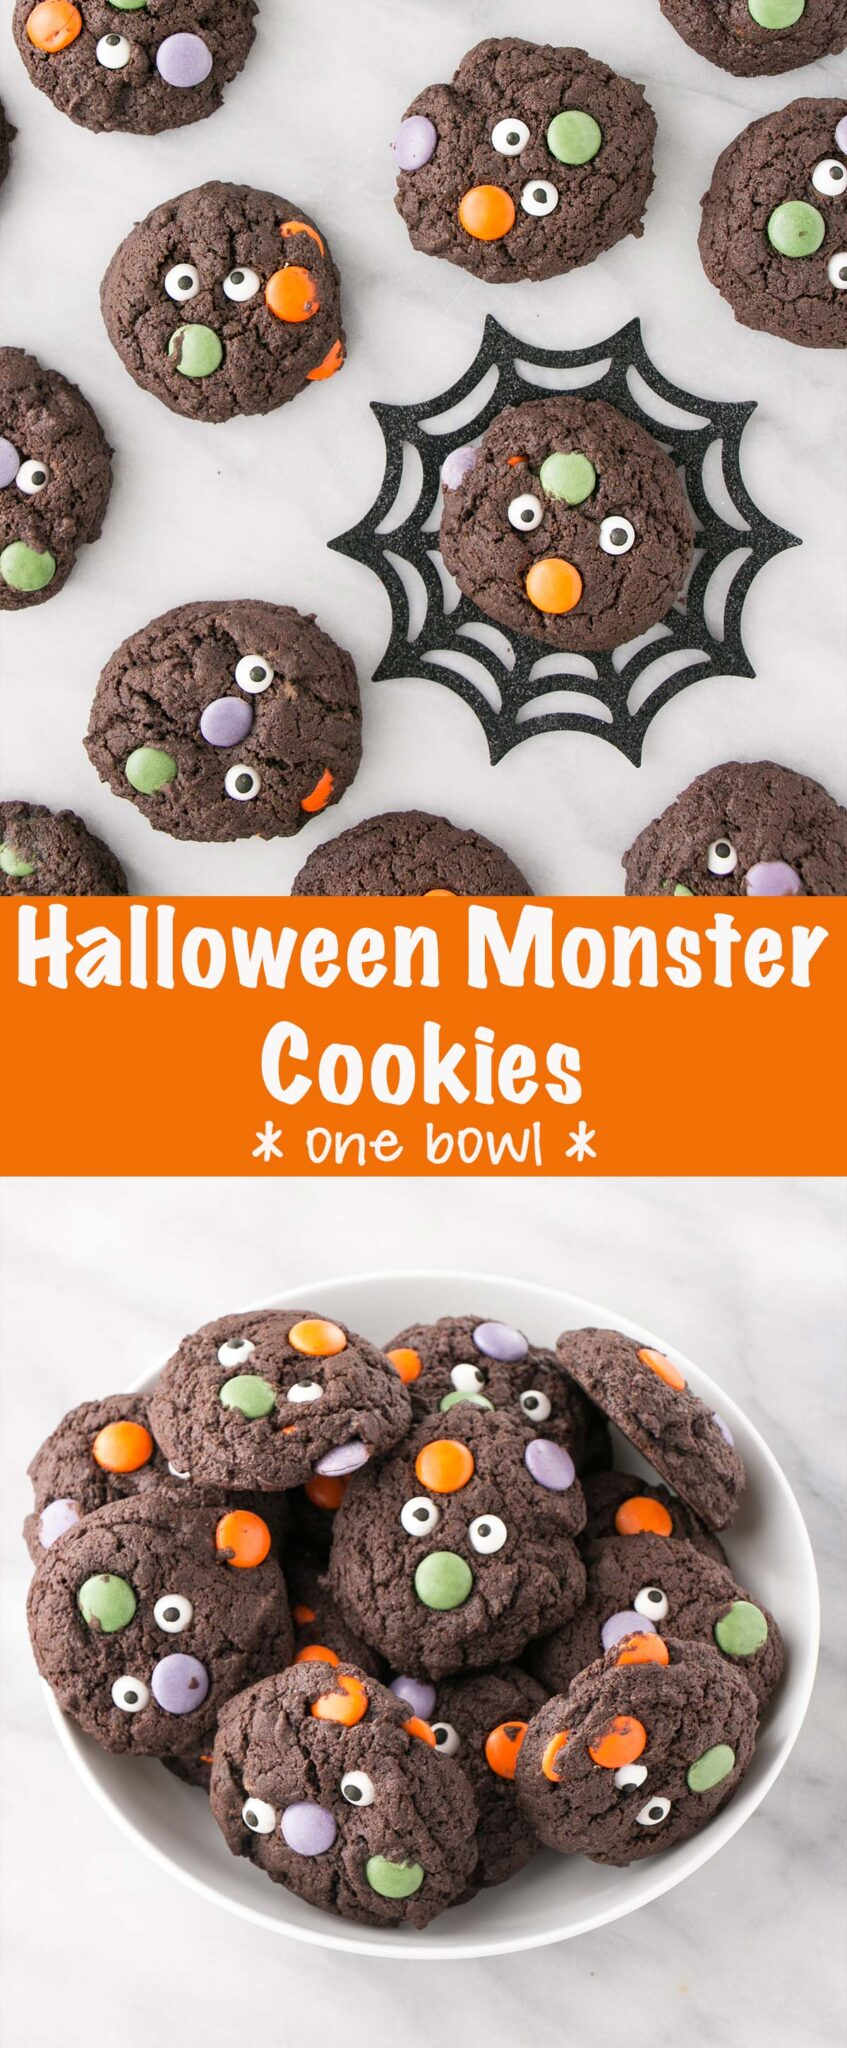 Halloween Monster Cookies pin